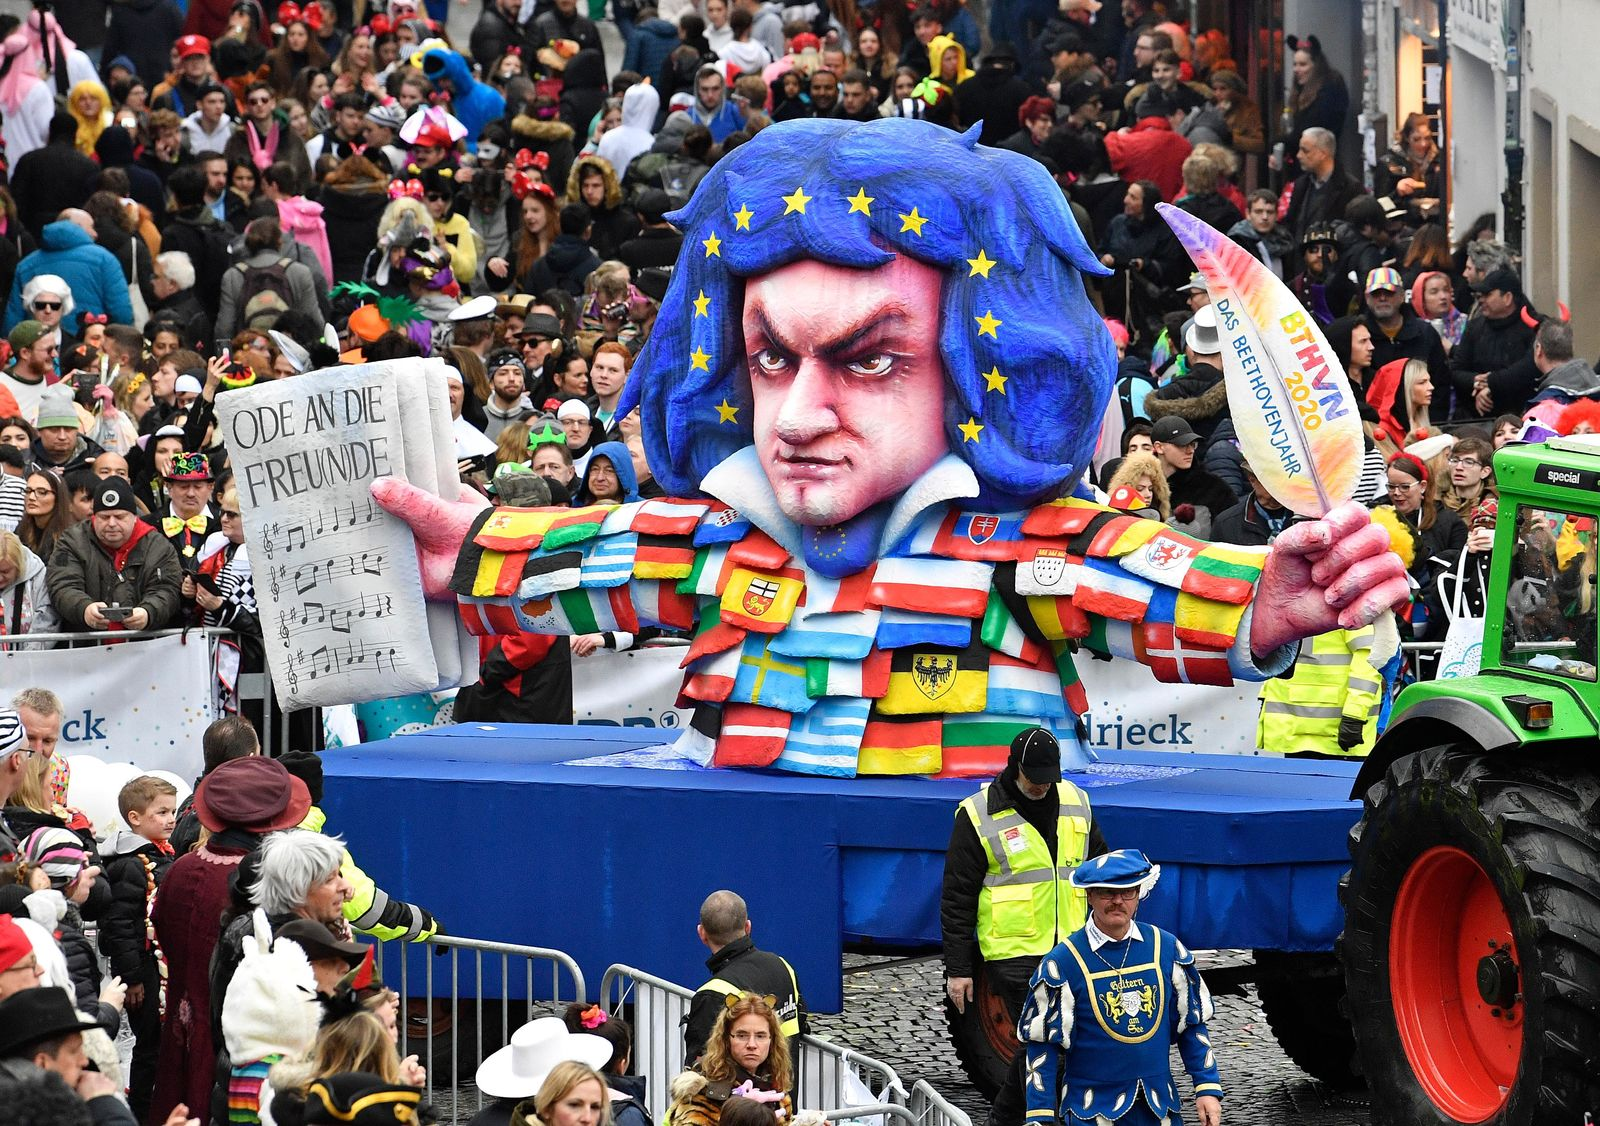 A carnival float depicts the 250th birthday of composer Ludwig van Beethoven during the traditional carnival parade in Duesseldorf, Germany, on Monday, Feb. 24, 2020. The foolish street spectacles in the carnival centers of Duesseldorf, Mainz and Cologne, watched by hundreds of thousands of people, are the highlights in Germany's carnival season on Rosemonday. (AP Photo/Martin Meissner)